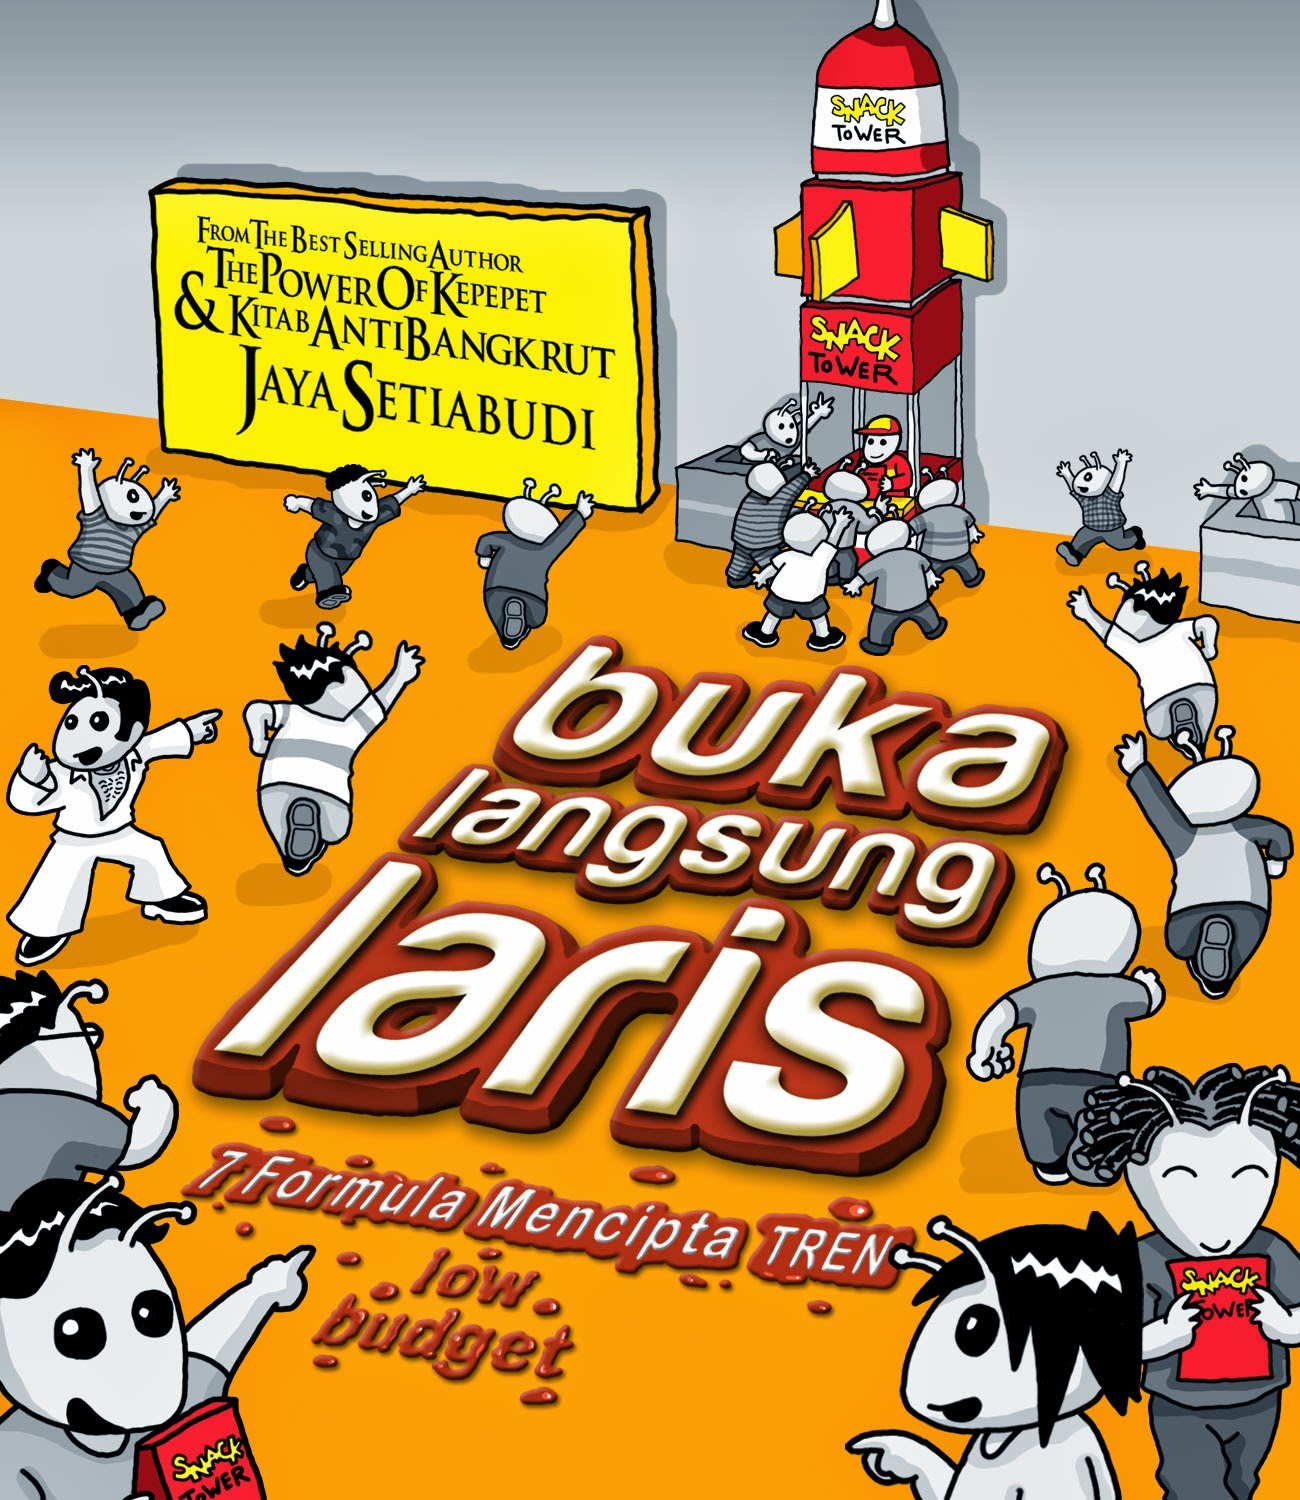 Photo of Buka Langsung Laris